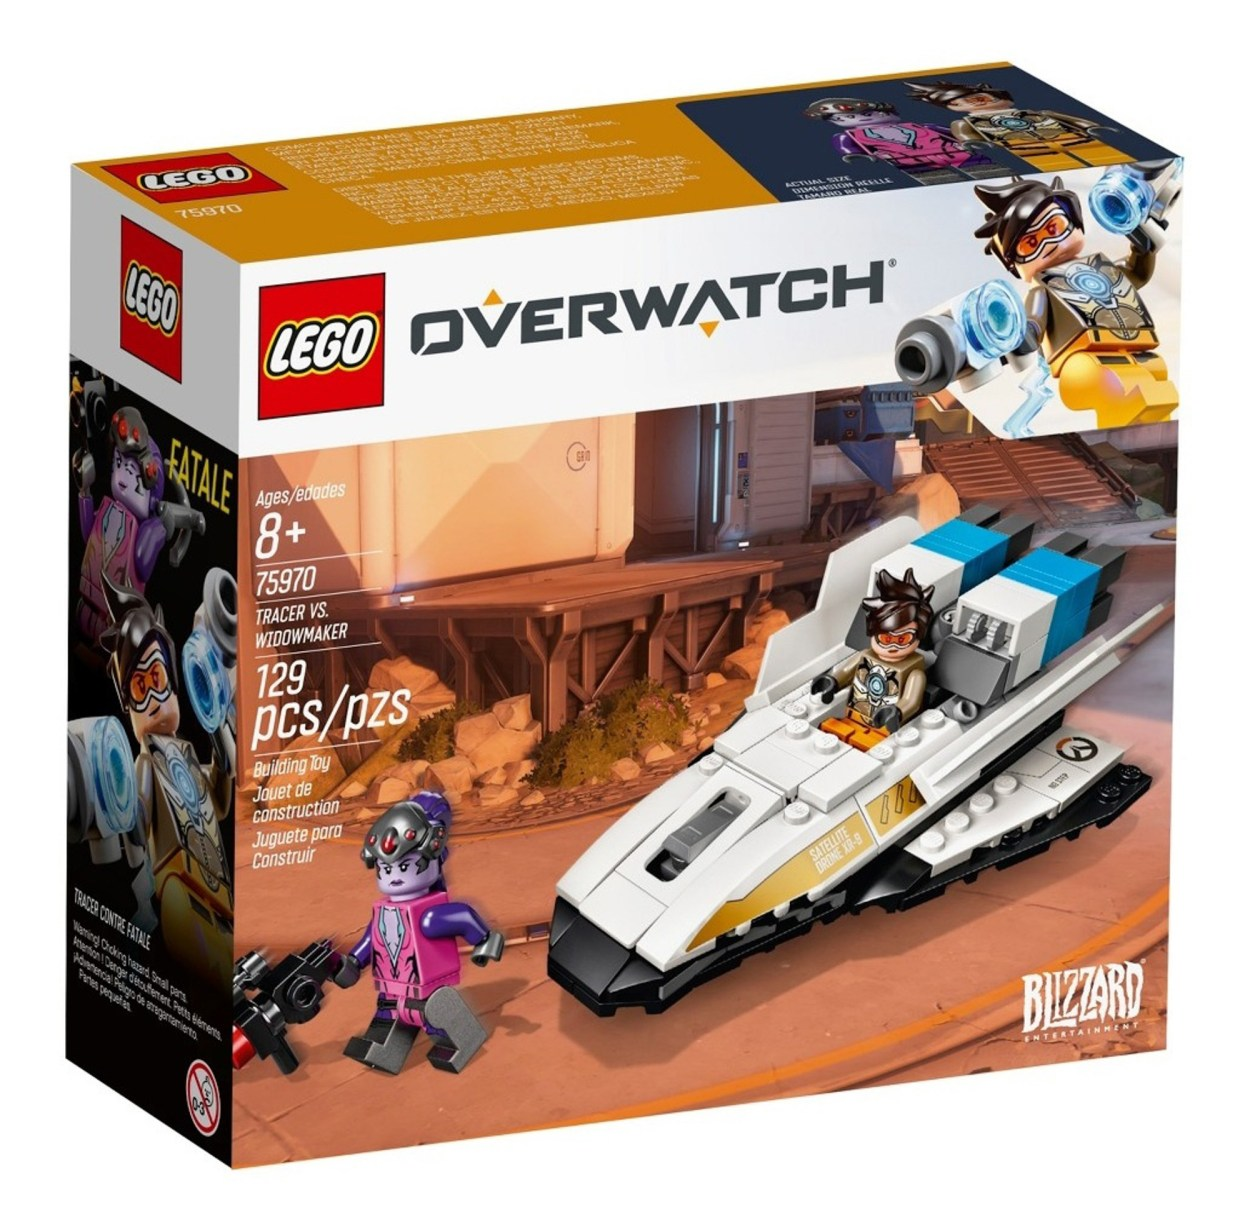 Overwatch LEGO Set